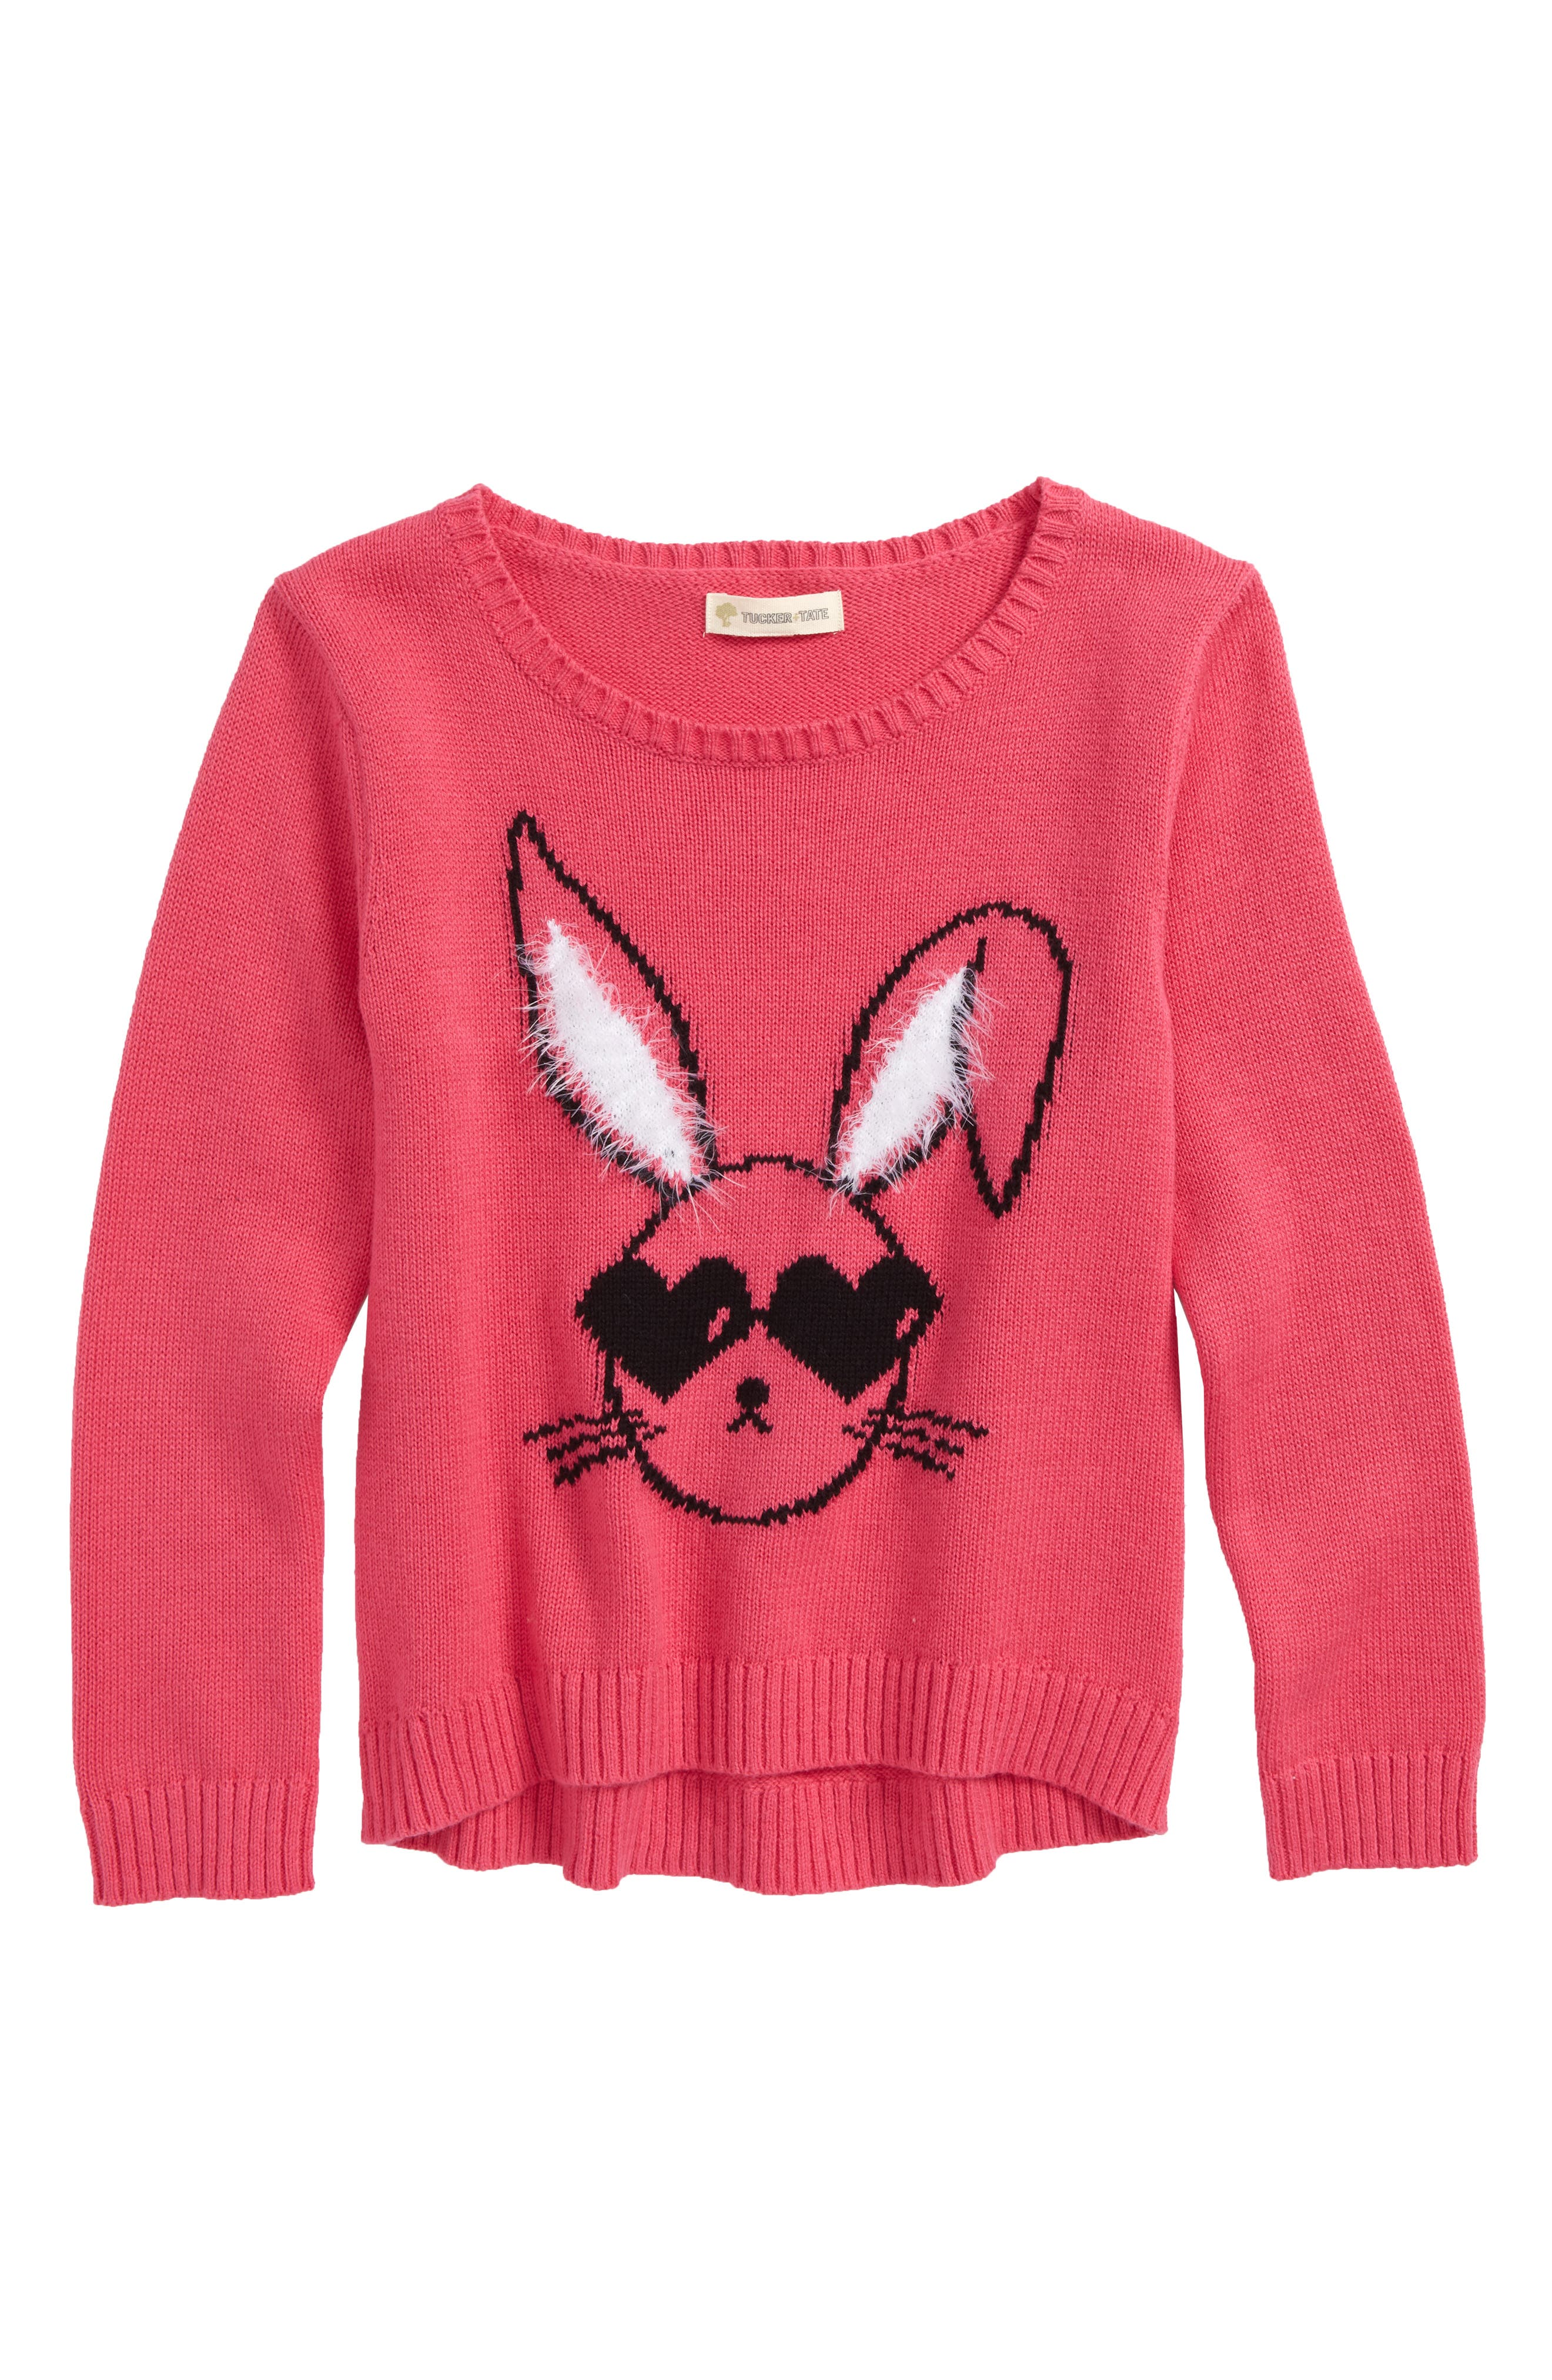 Icon Sweater,                             Main thumbnail 1, color,                             PINK MAGENTA COOL BUNNY